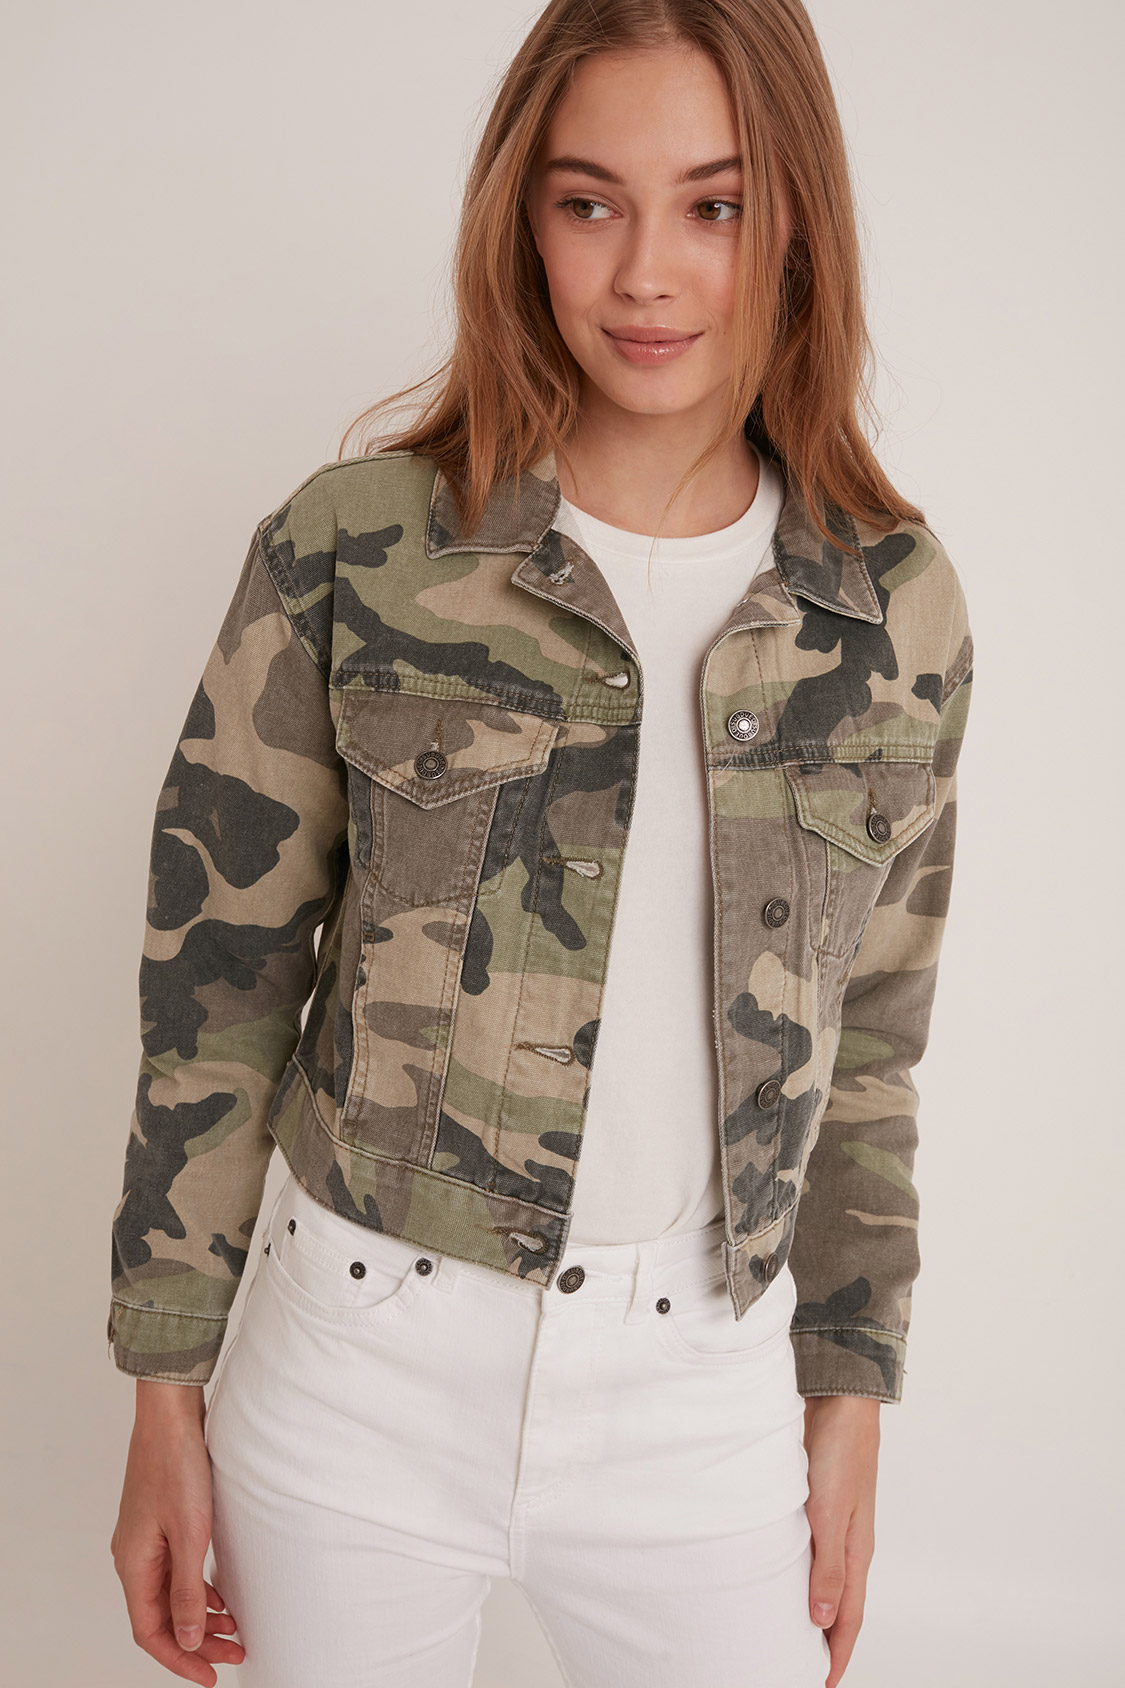 411e56667b6e8 Camo jacket. Skip to the beginning of the images gallery